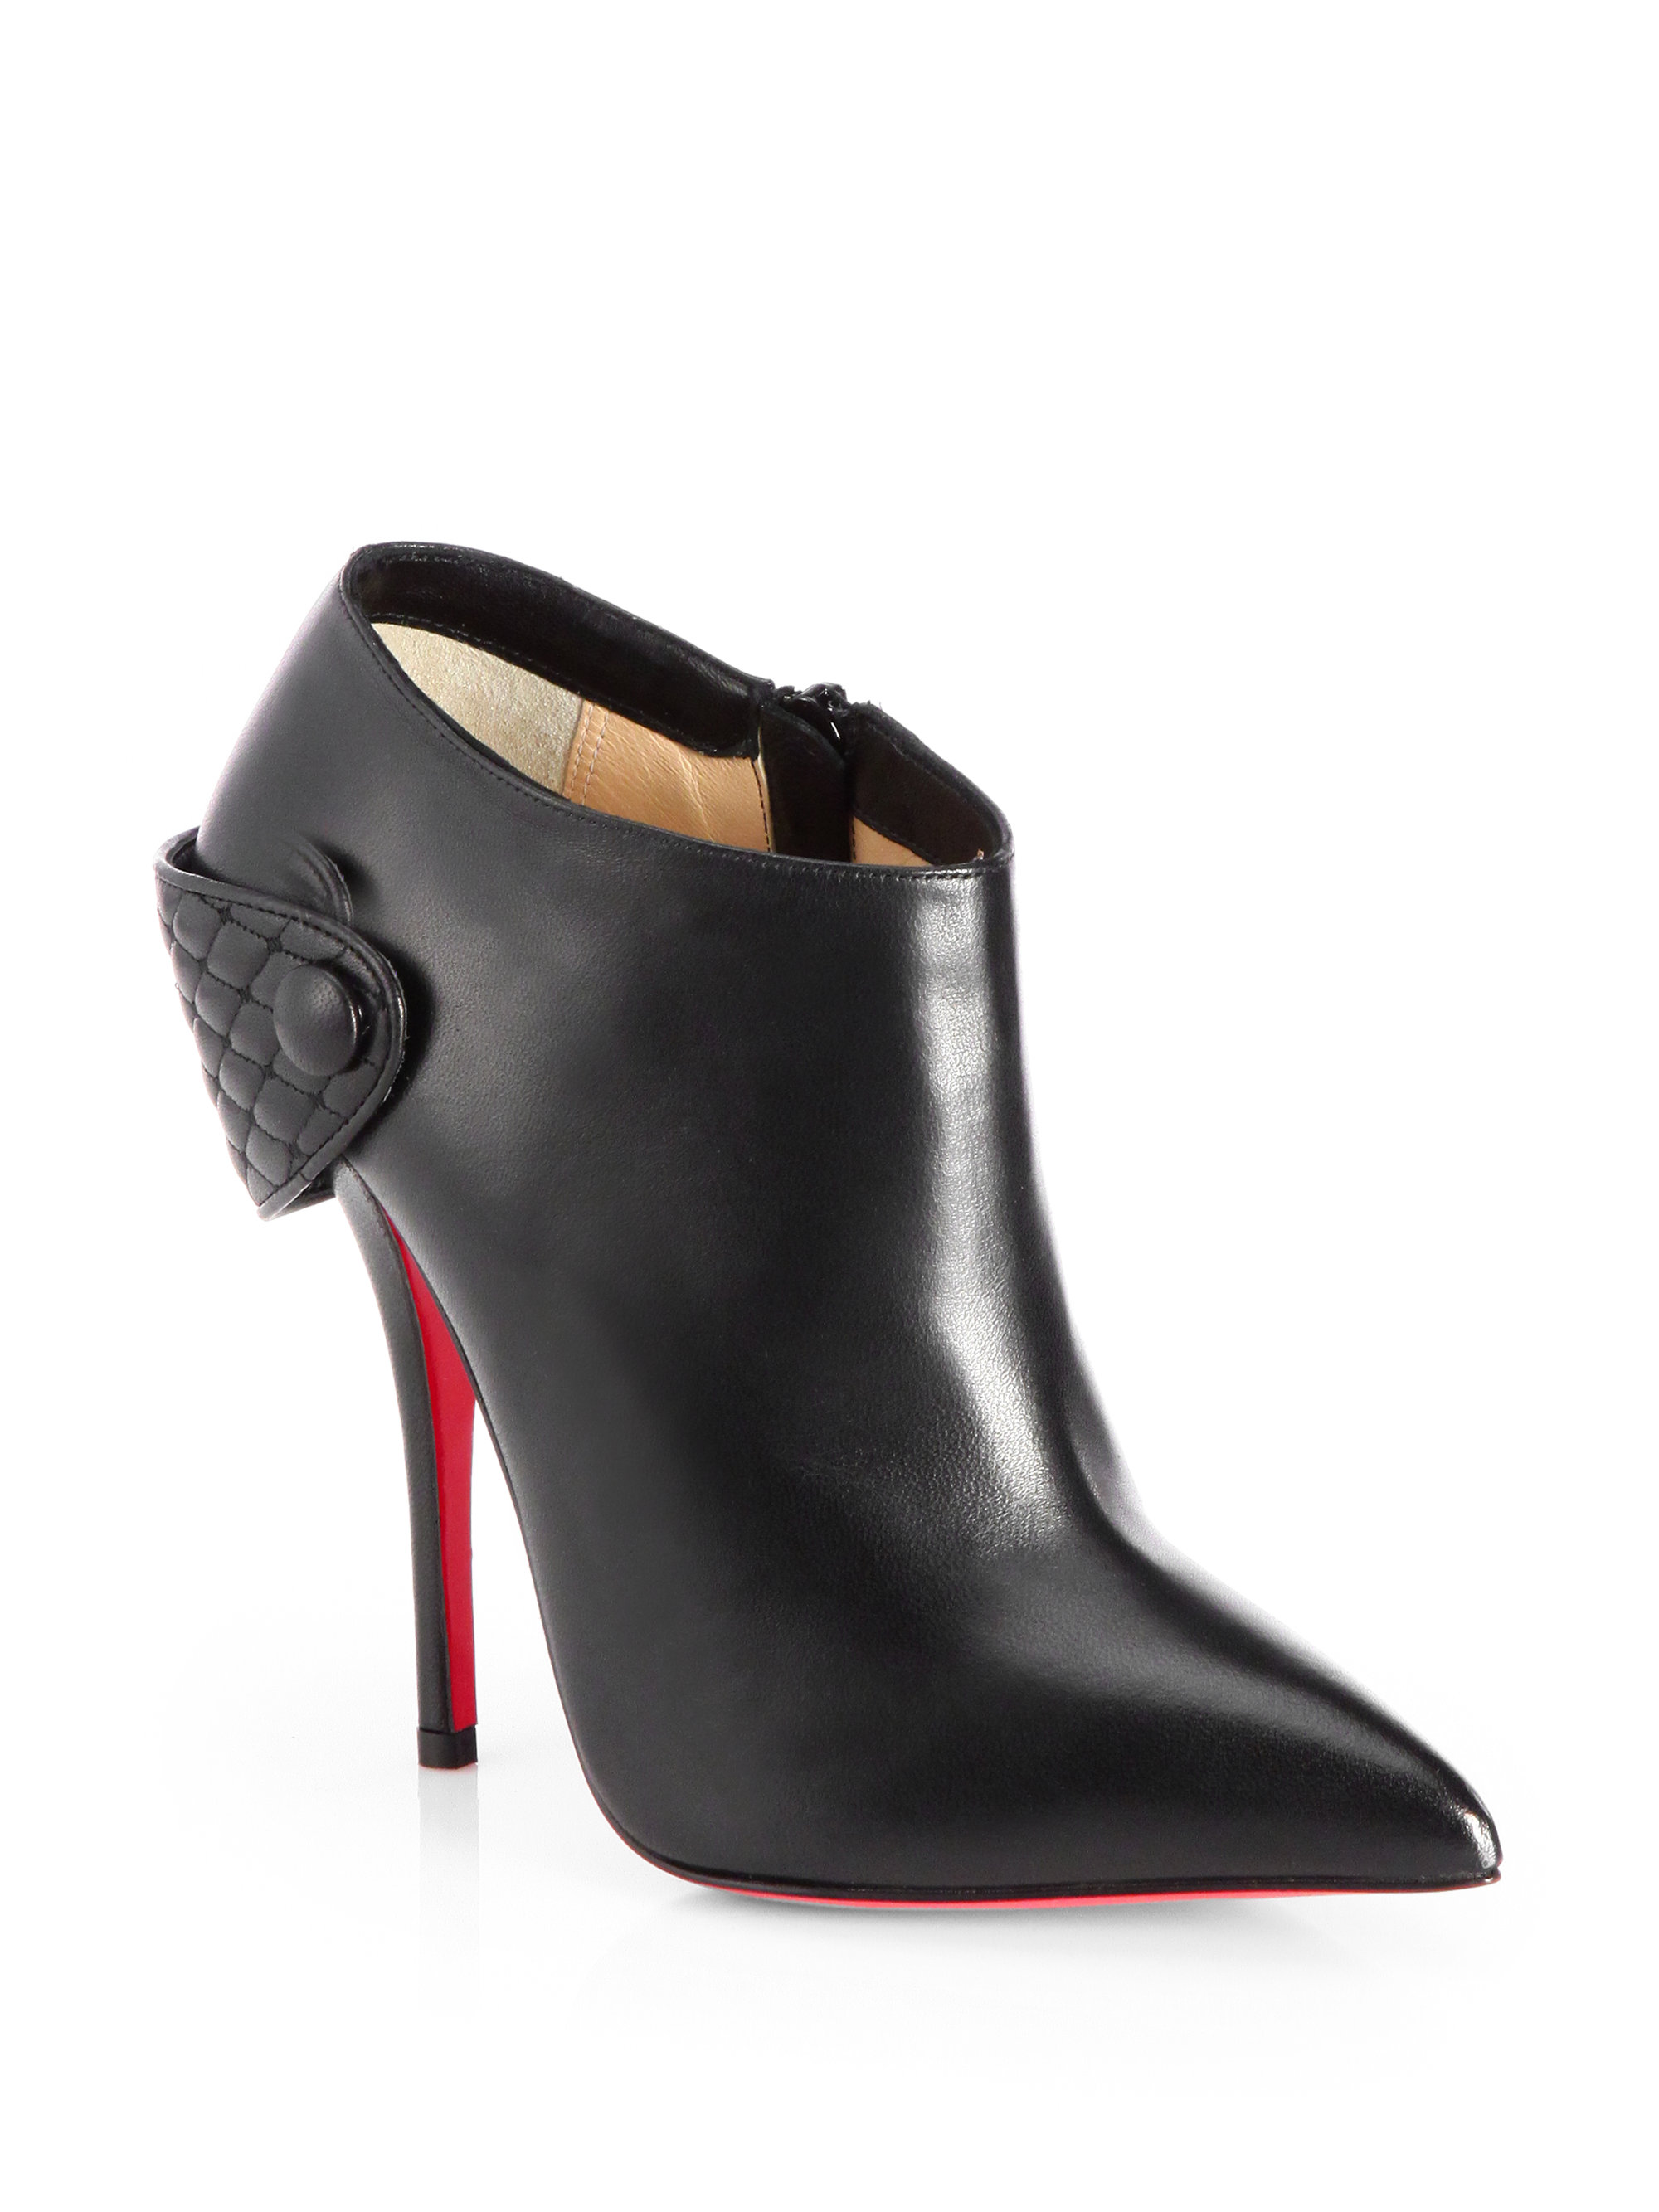 Lyst Christian Louboutin Huguette Leather Moto Ankle